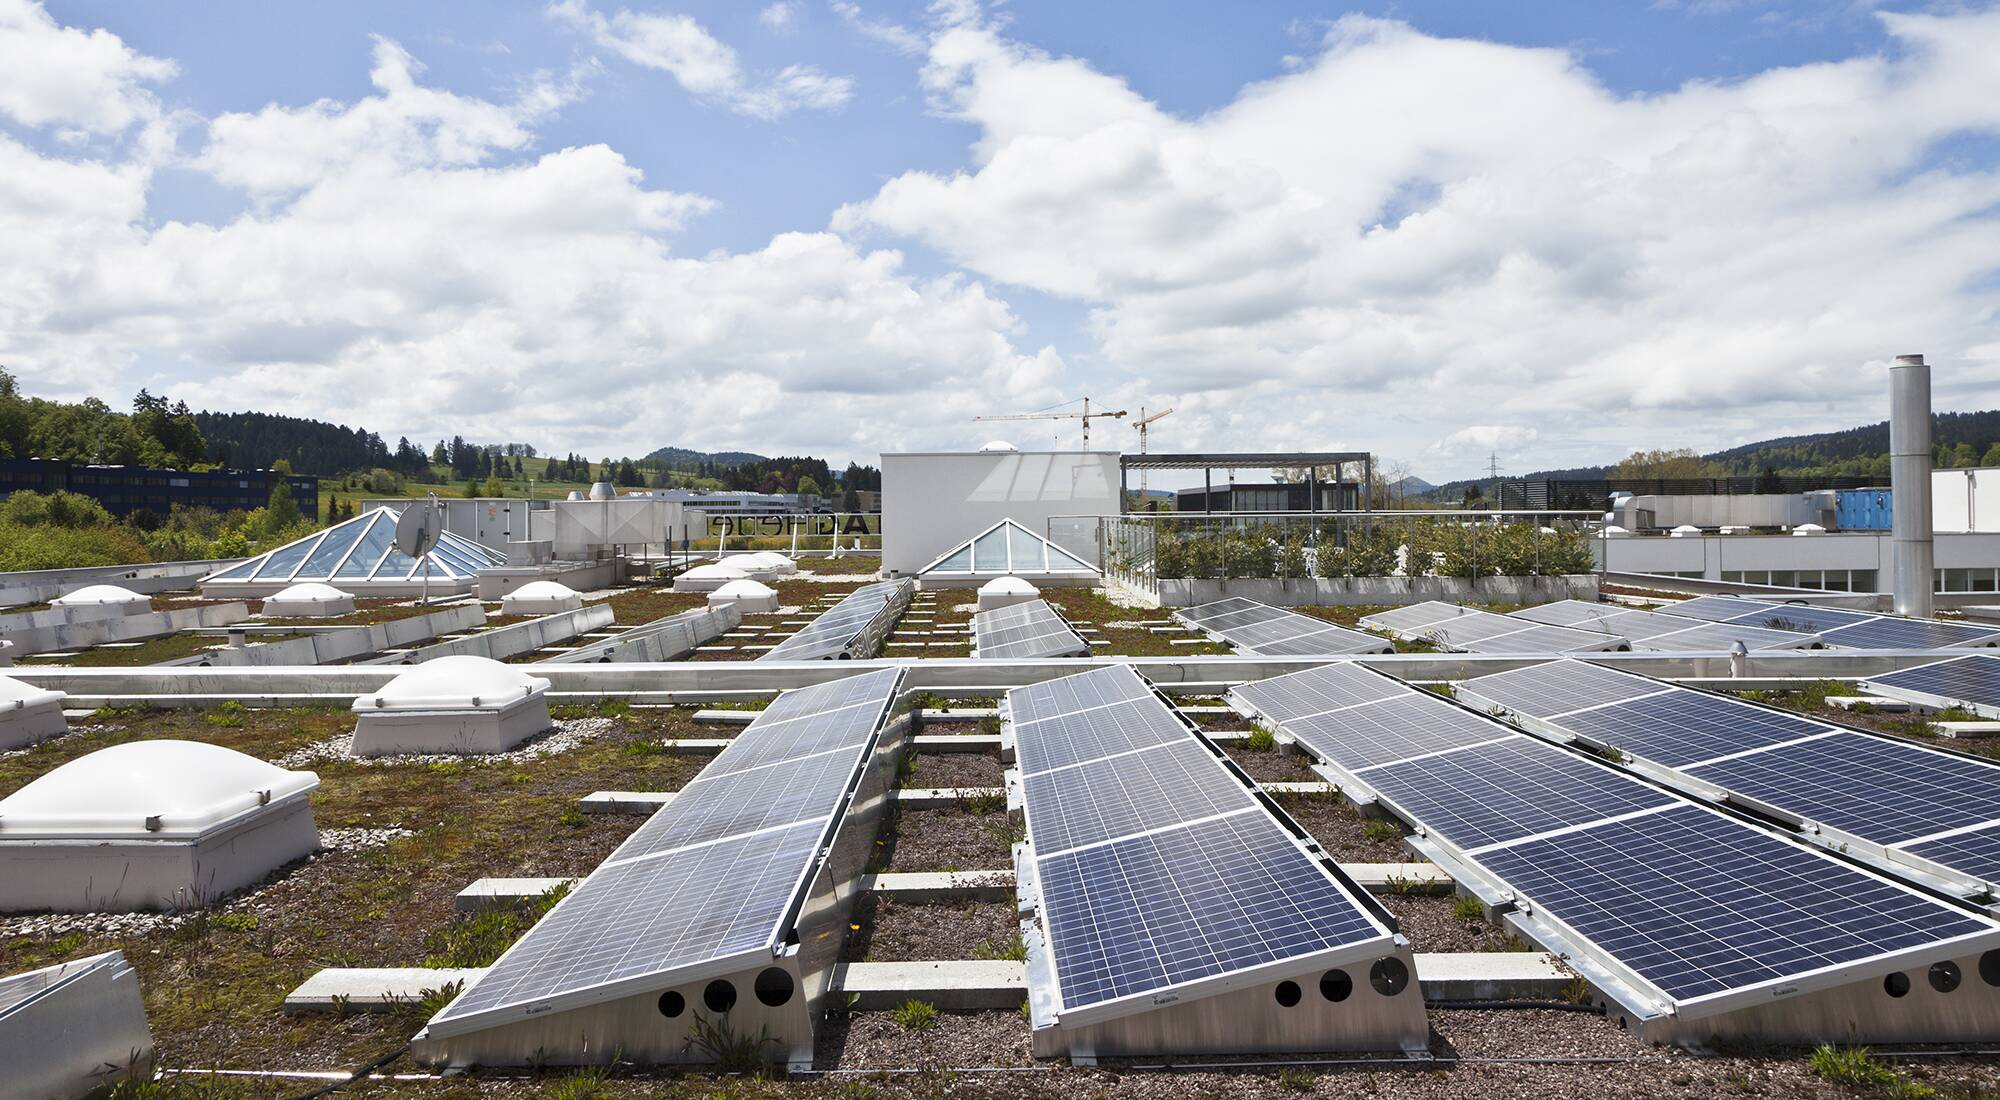 LVMH Houses powered by renewable energies! - LVMH